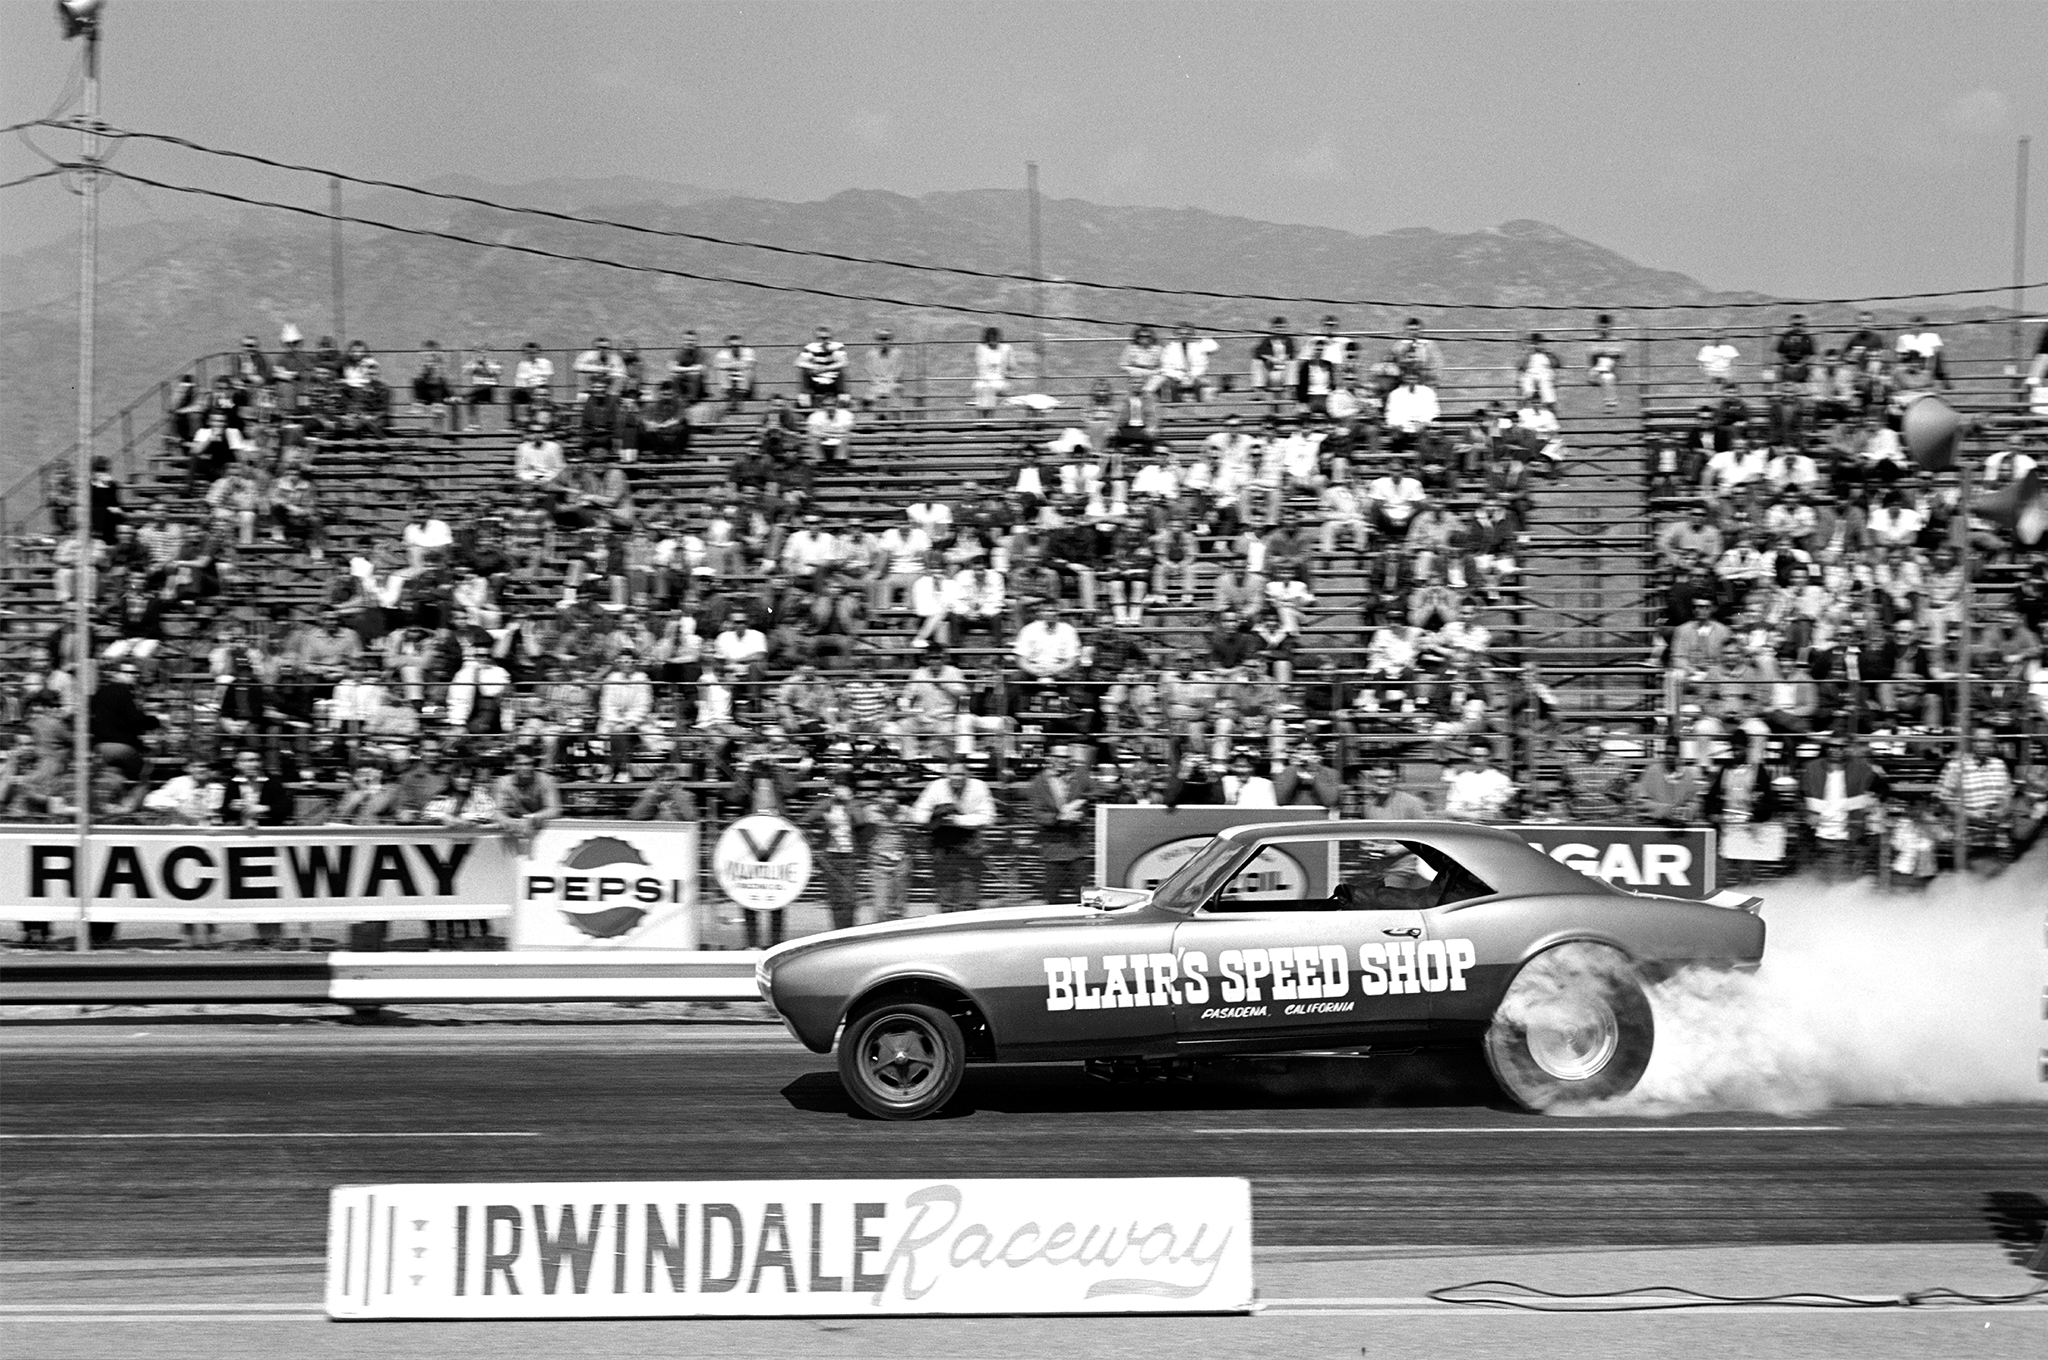 "Launching at Irwindale Raceway in March 1967, an early shot of the Blair's Camaro Funny Car was typical for the era, with some unique features like torsion bars front and rear, and a driver's door, as the body was heavy to lift from thick fiberglass used back in the day. Says Pete Poland, ""Our biggest moment of glory was in 1967 at Cecil County for the Super Stock Nationals, where we beat Jack Chrisman at 2:30 a.m. to take the XSX title."""